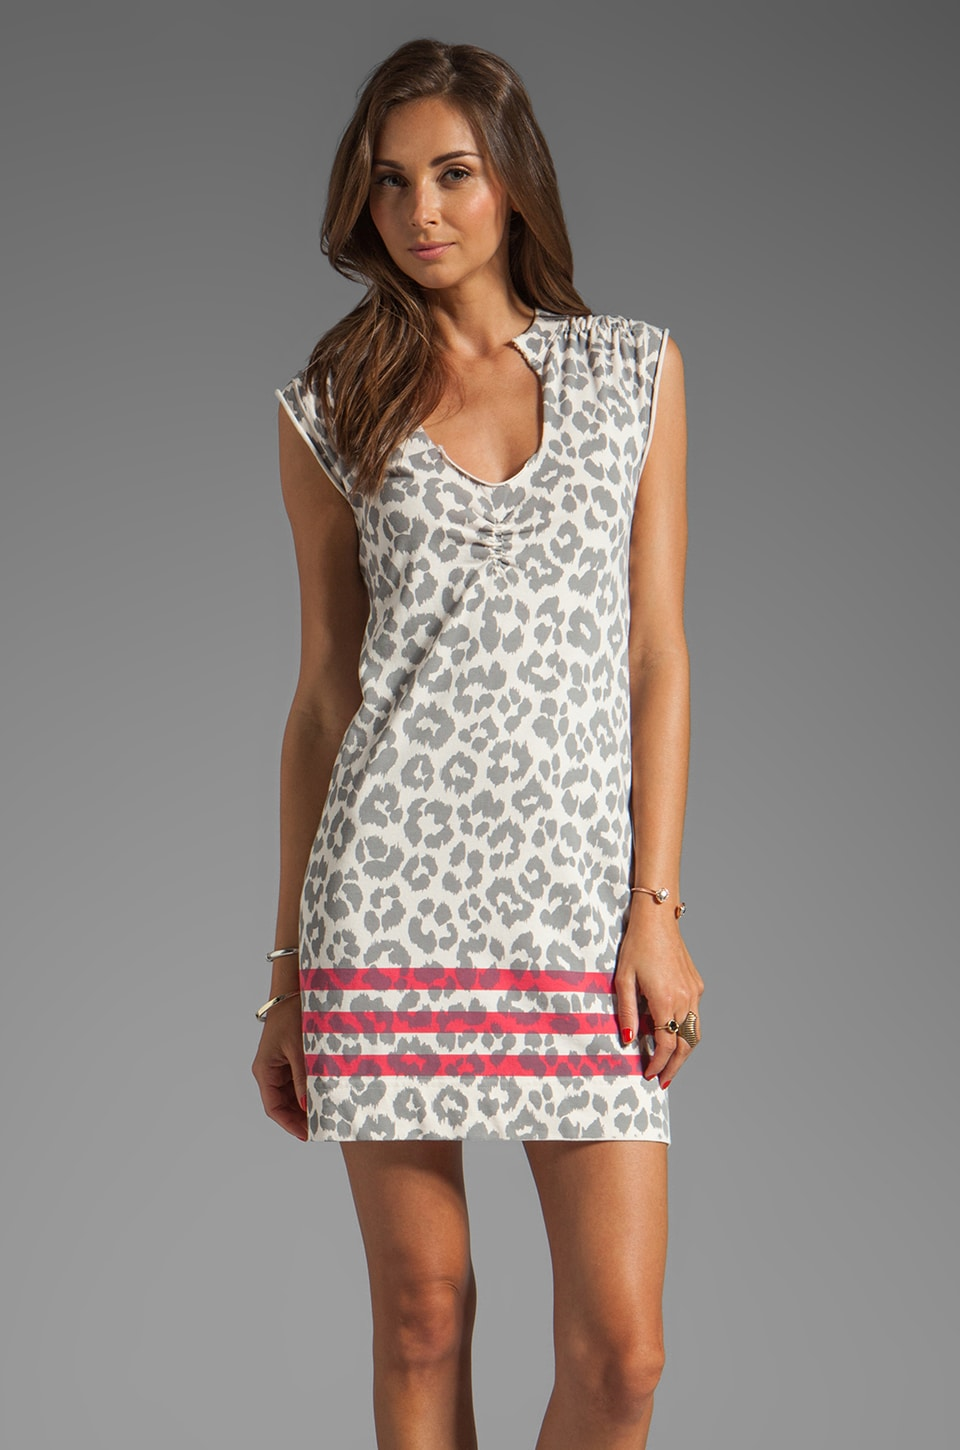 Marc by Marc Jacobs Dita the Cheetah Dress in Dapper Grey Multi